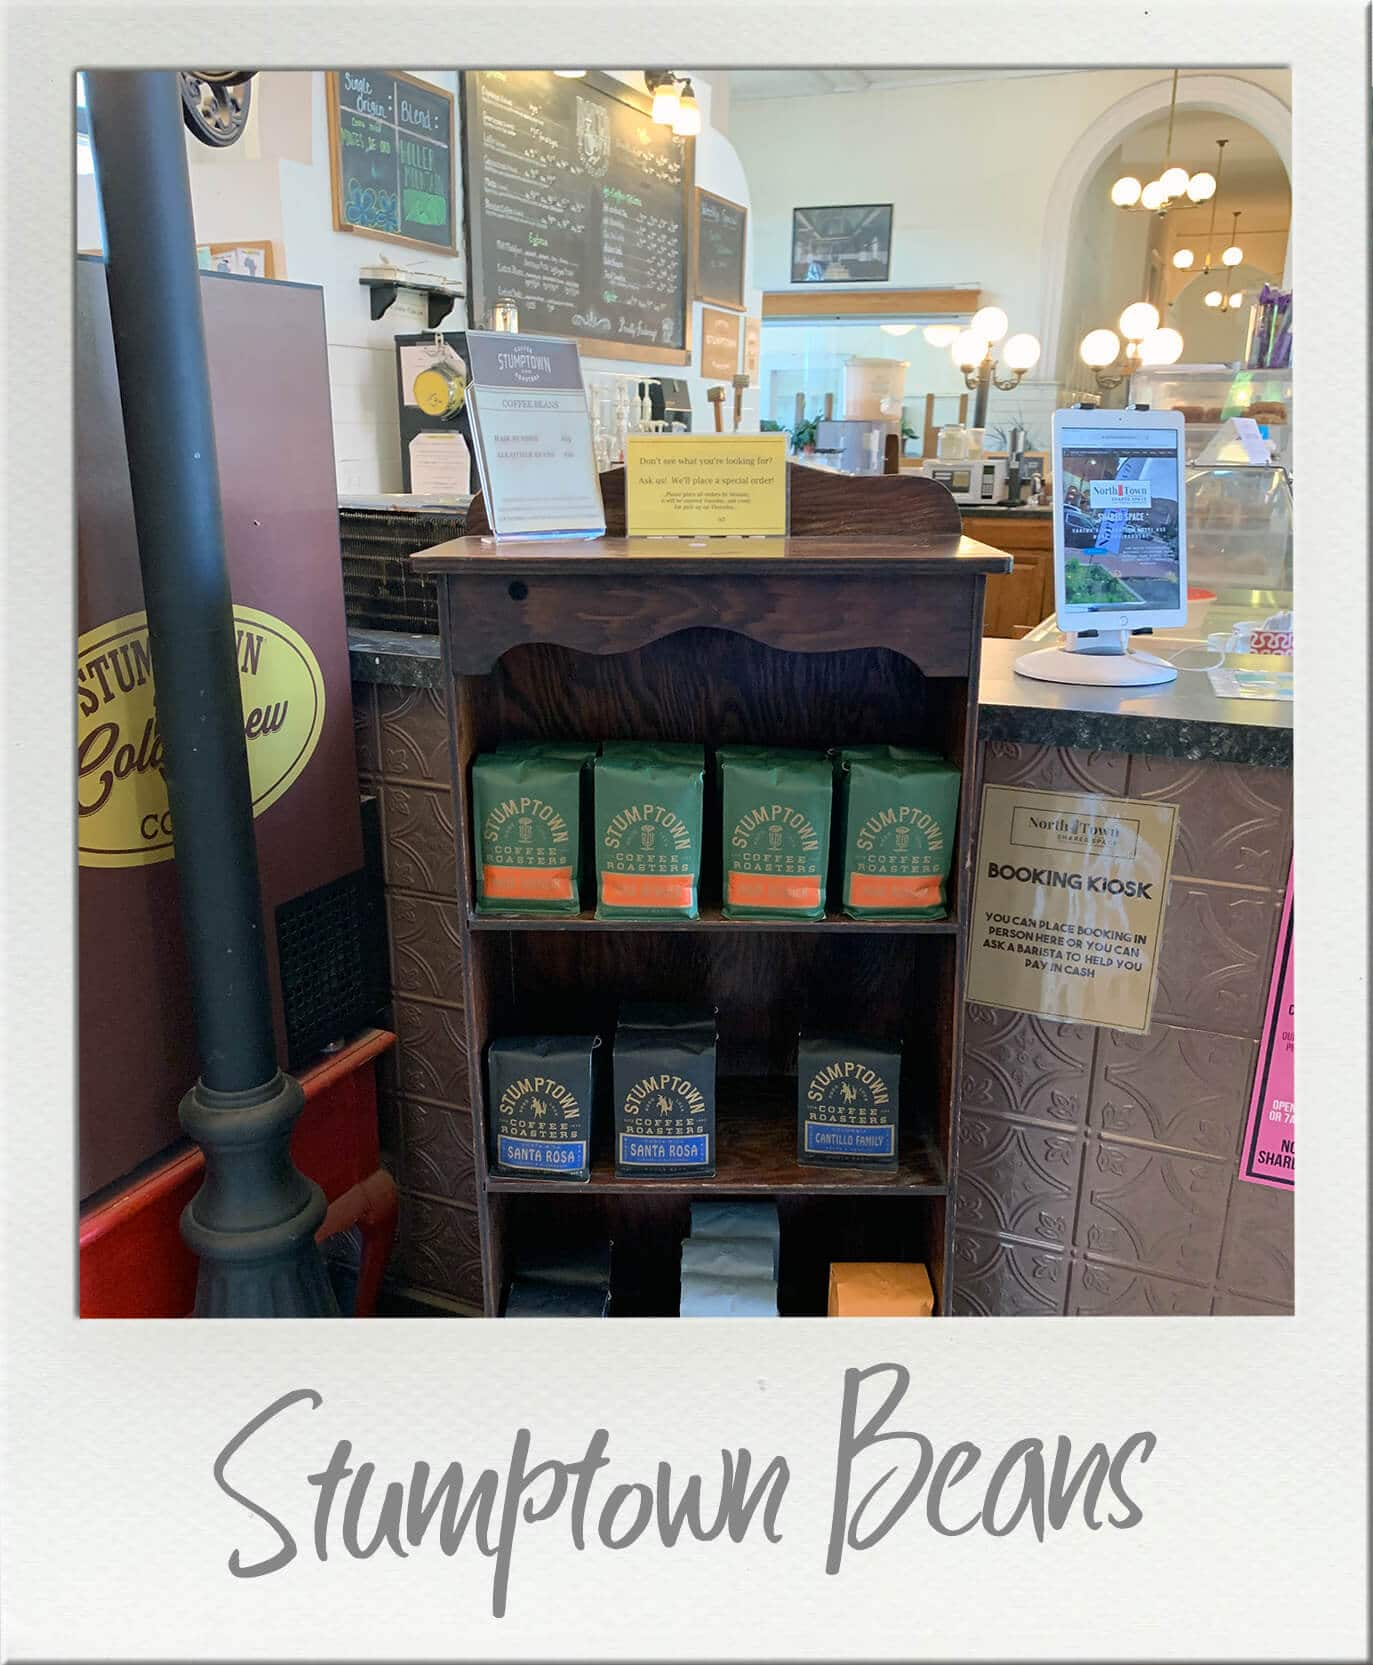 Northtown Coffeehouse Display of Stumptown Coffee Beans for sale